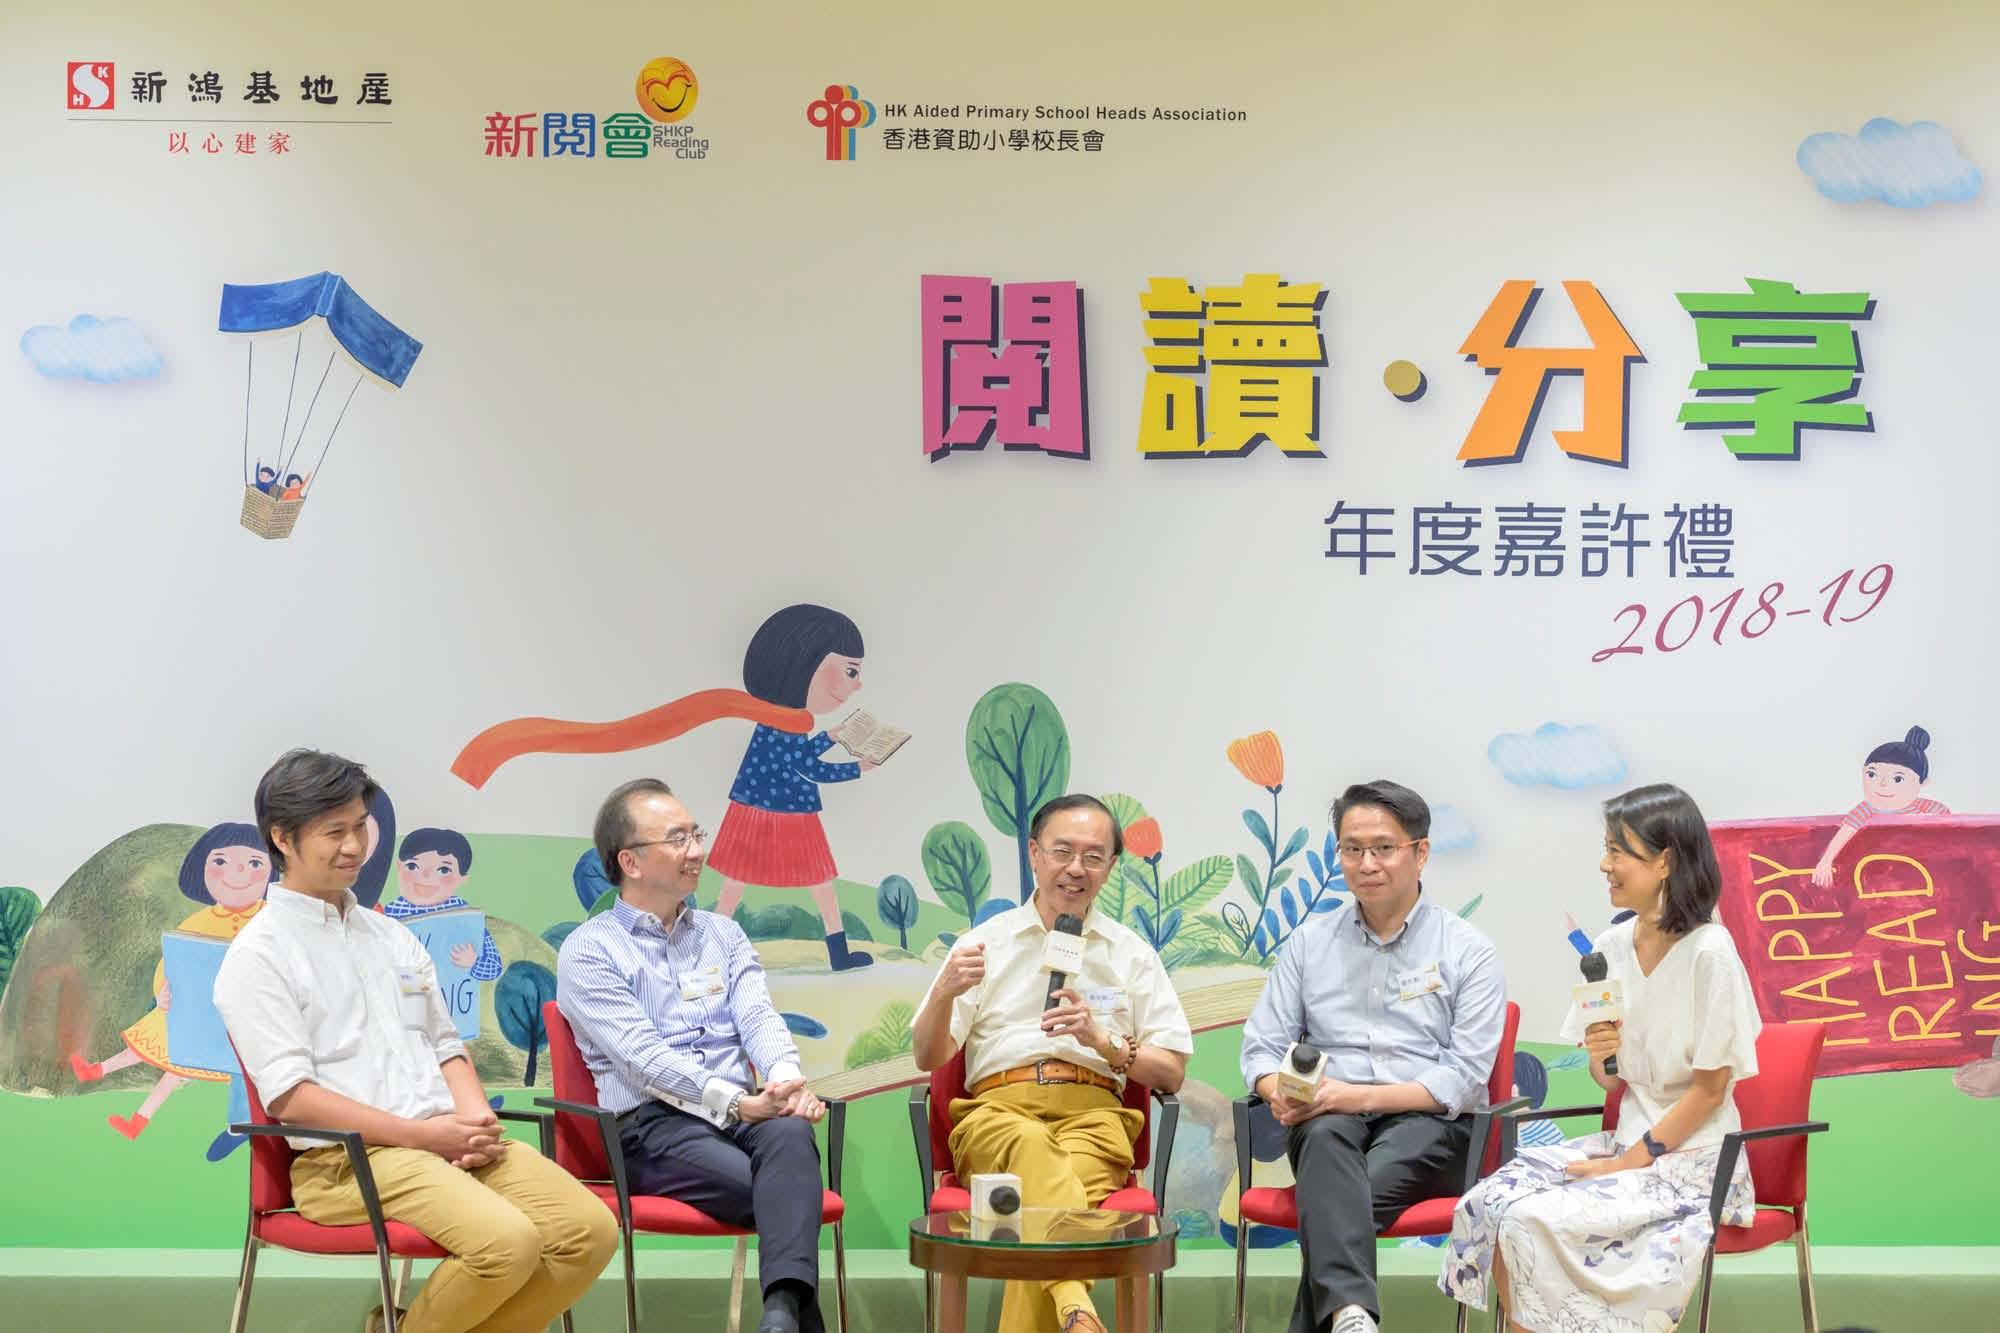 (From left to right) Tong Yui, Cheung Yung-pong, Leung Siu-tong and STEM Sir offer tips to promote reading amongst the students